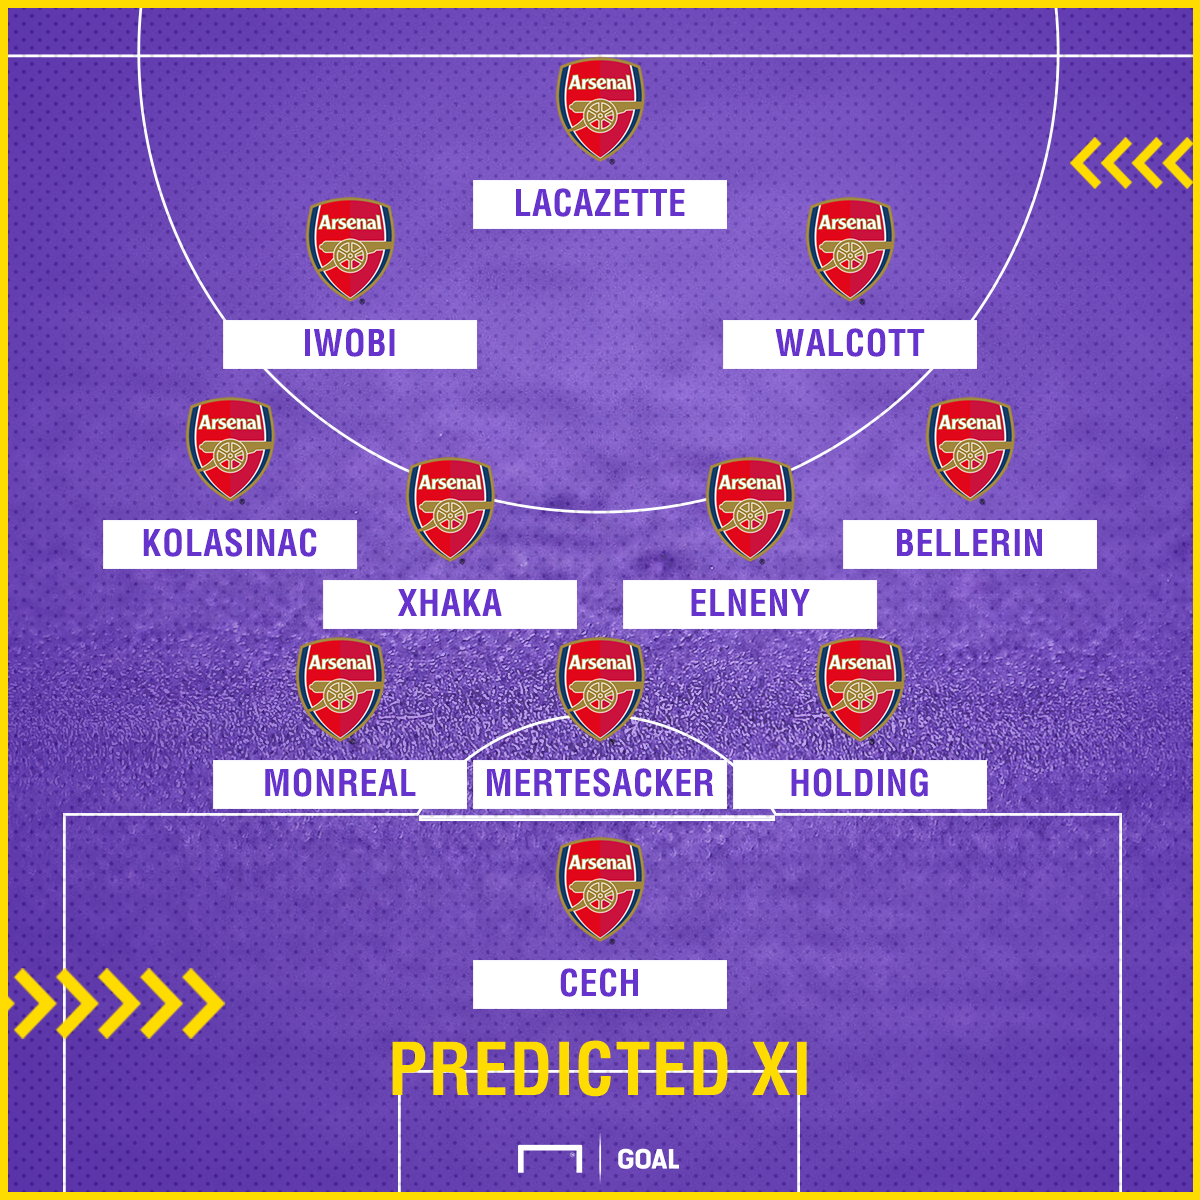 Predicted XI Arsenal